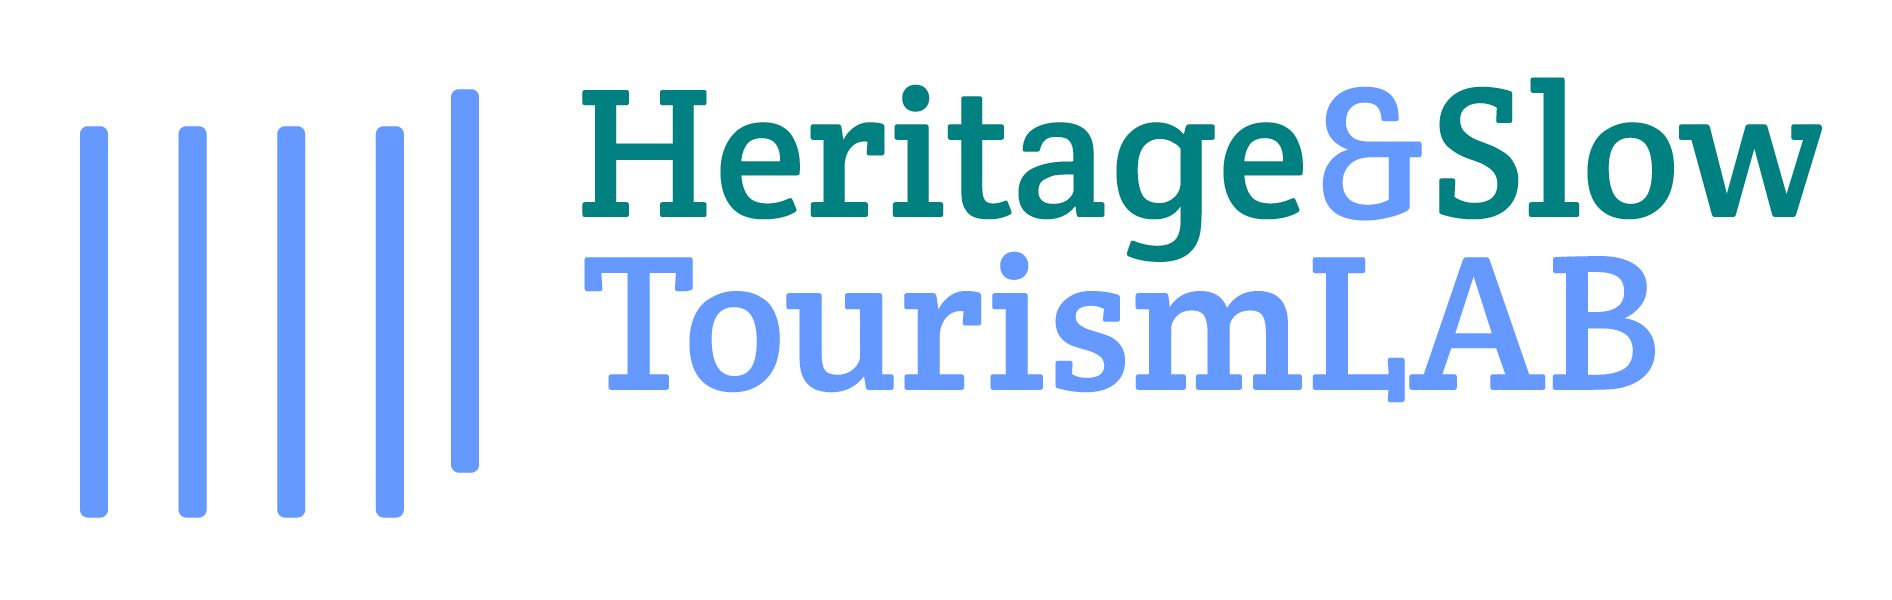 Heritage & Slow TourismLAB - A HTHIC Initiative